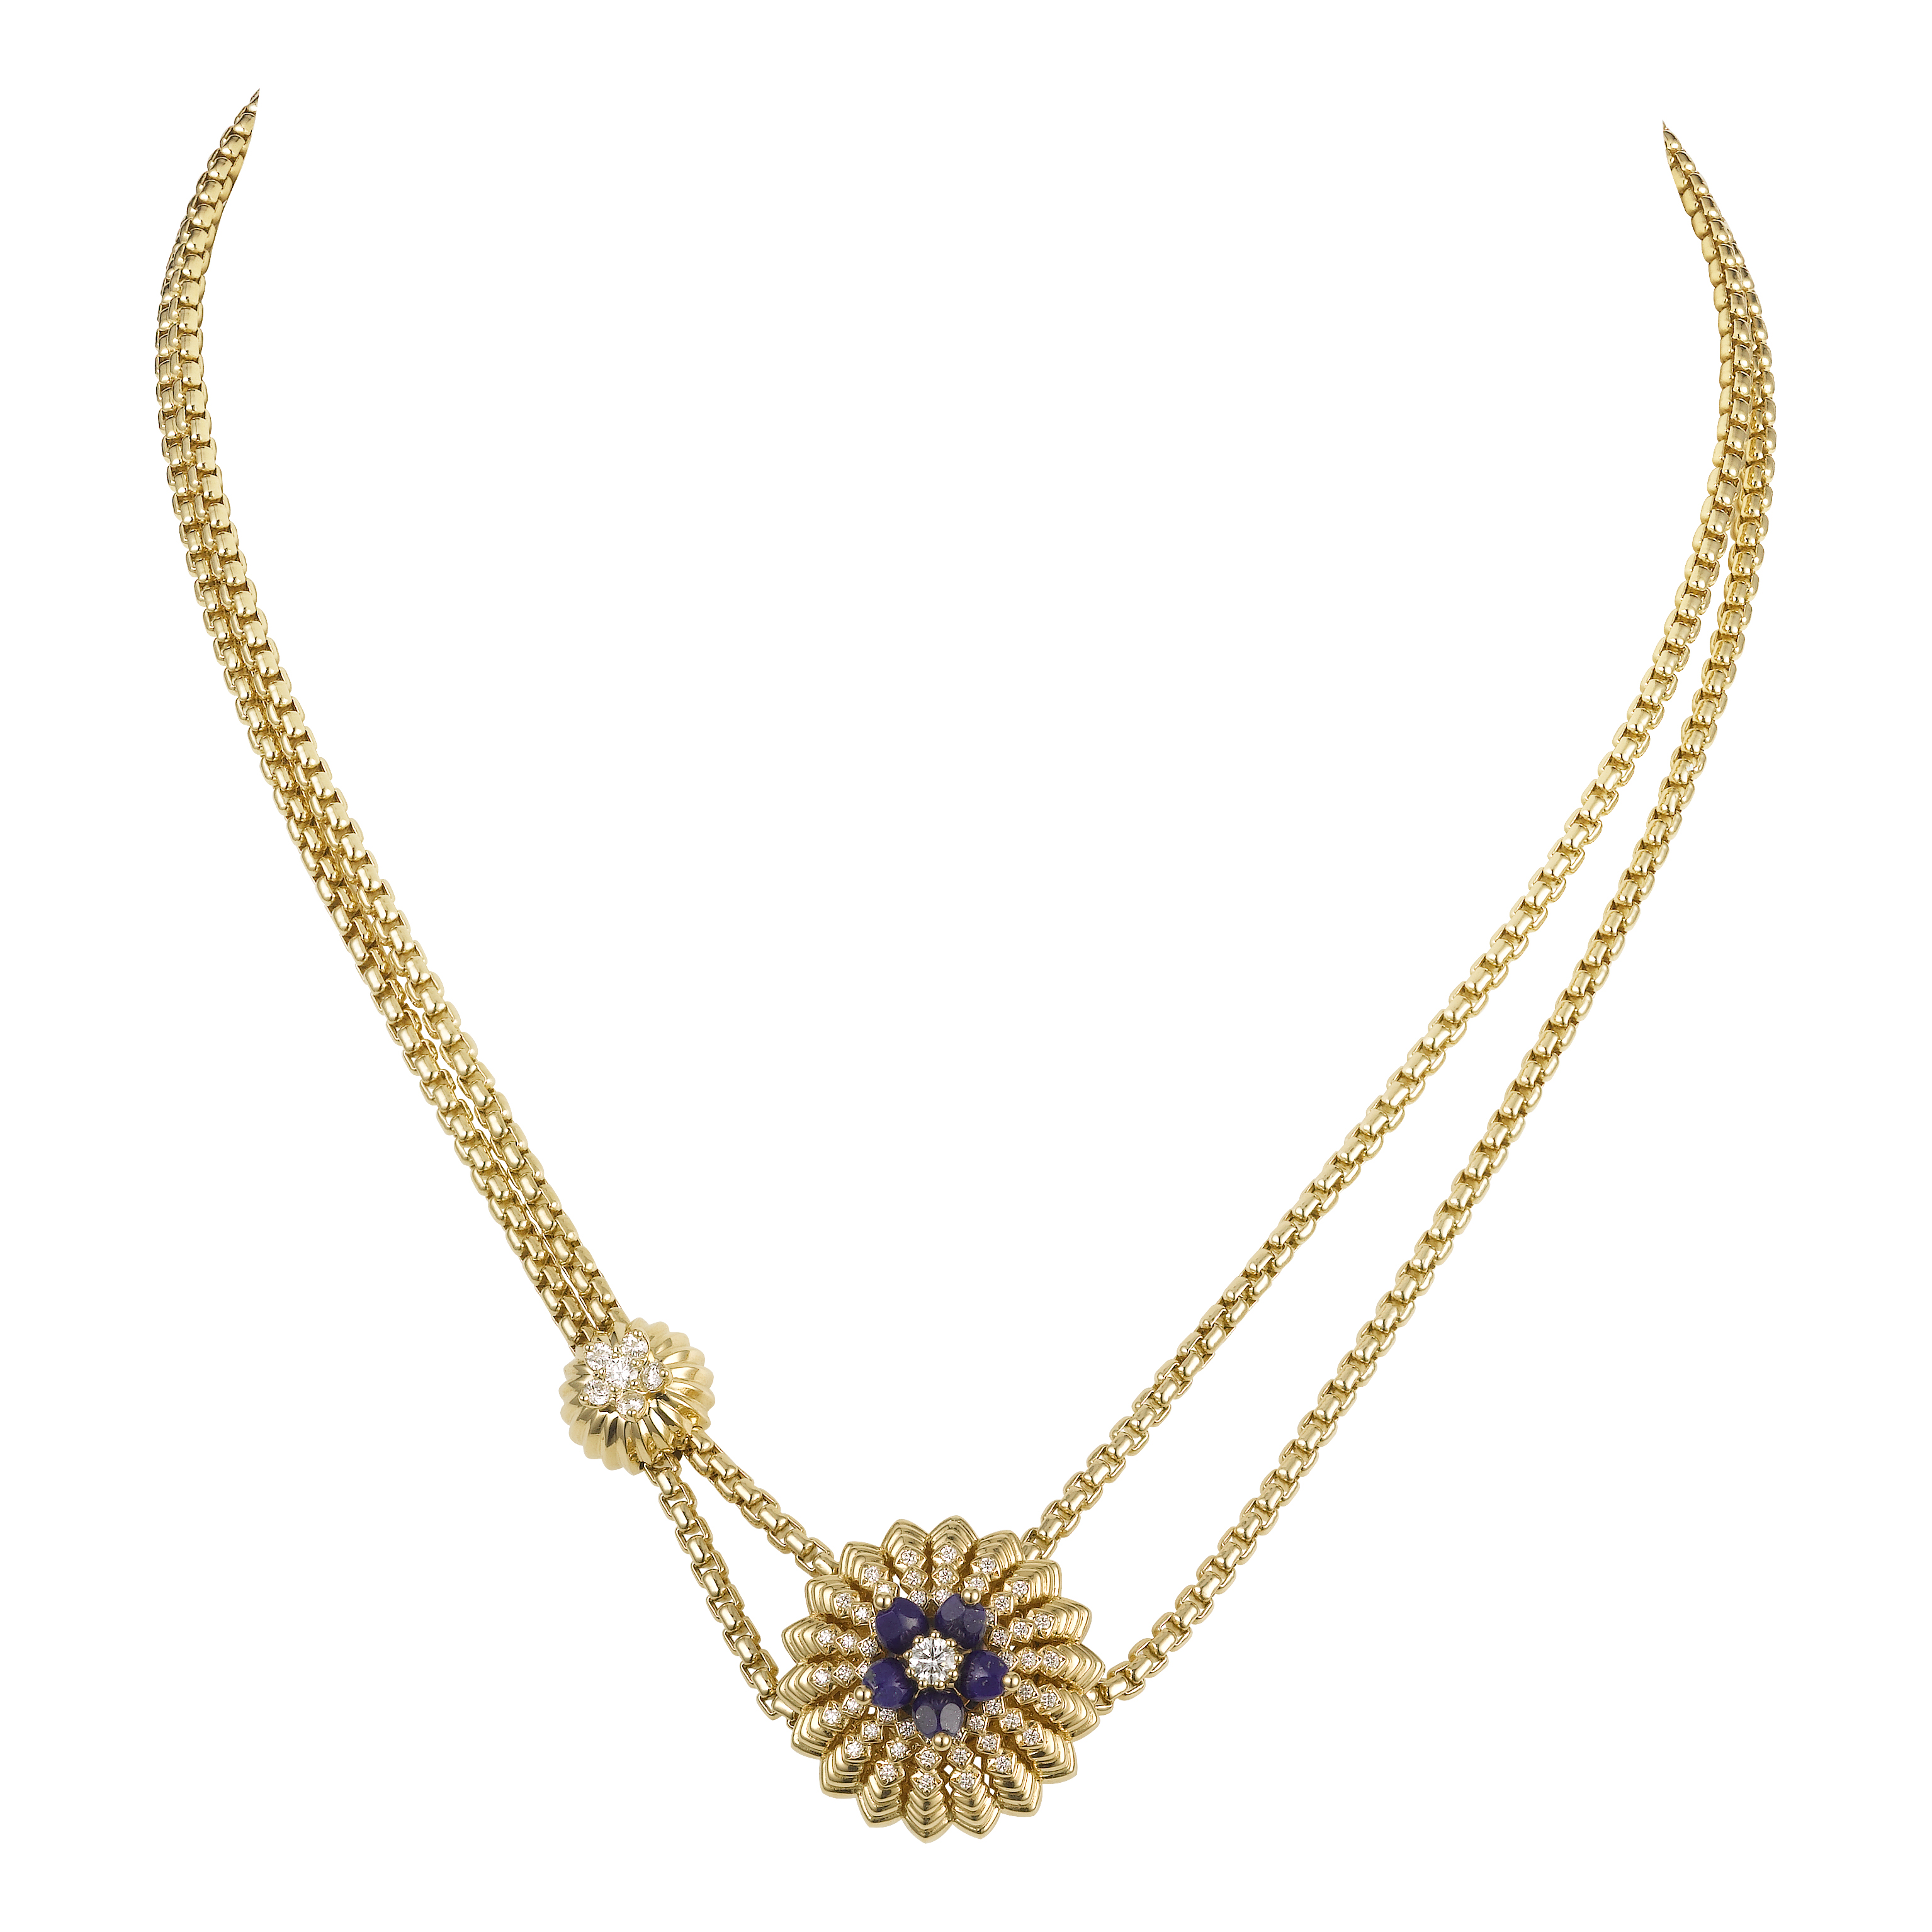 A necklace from the Cactus de Cartier collection